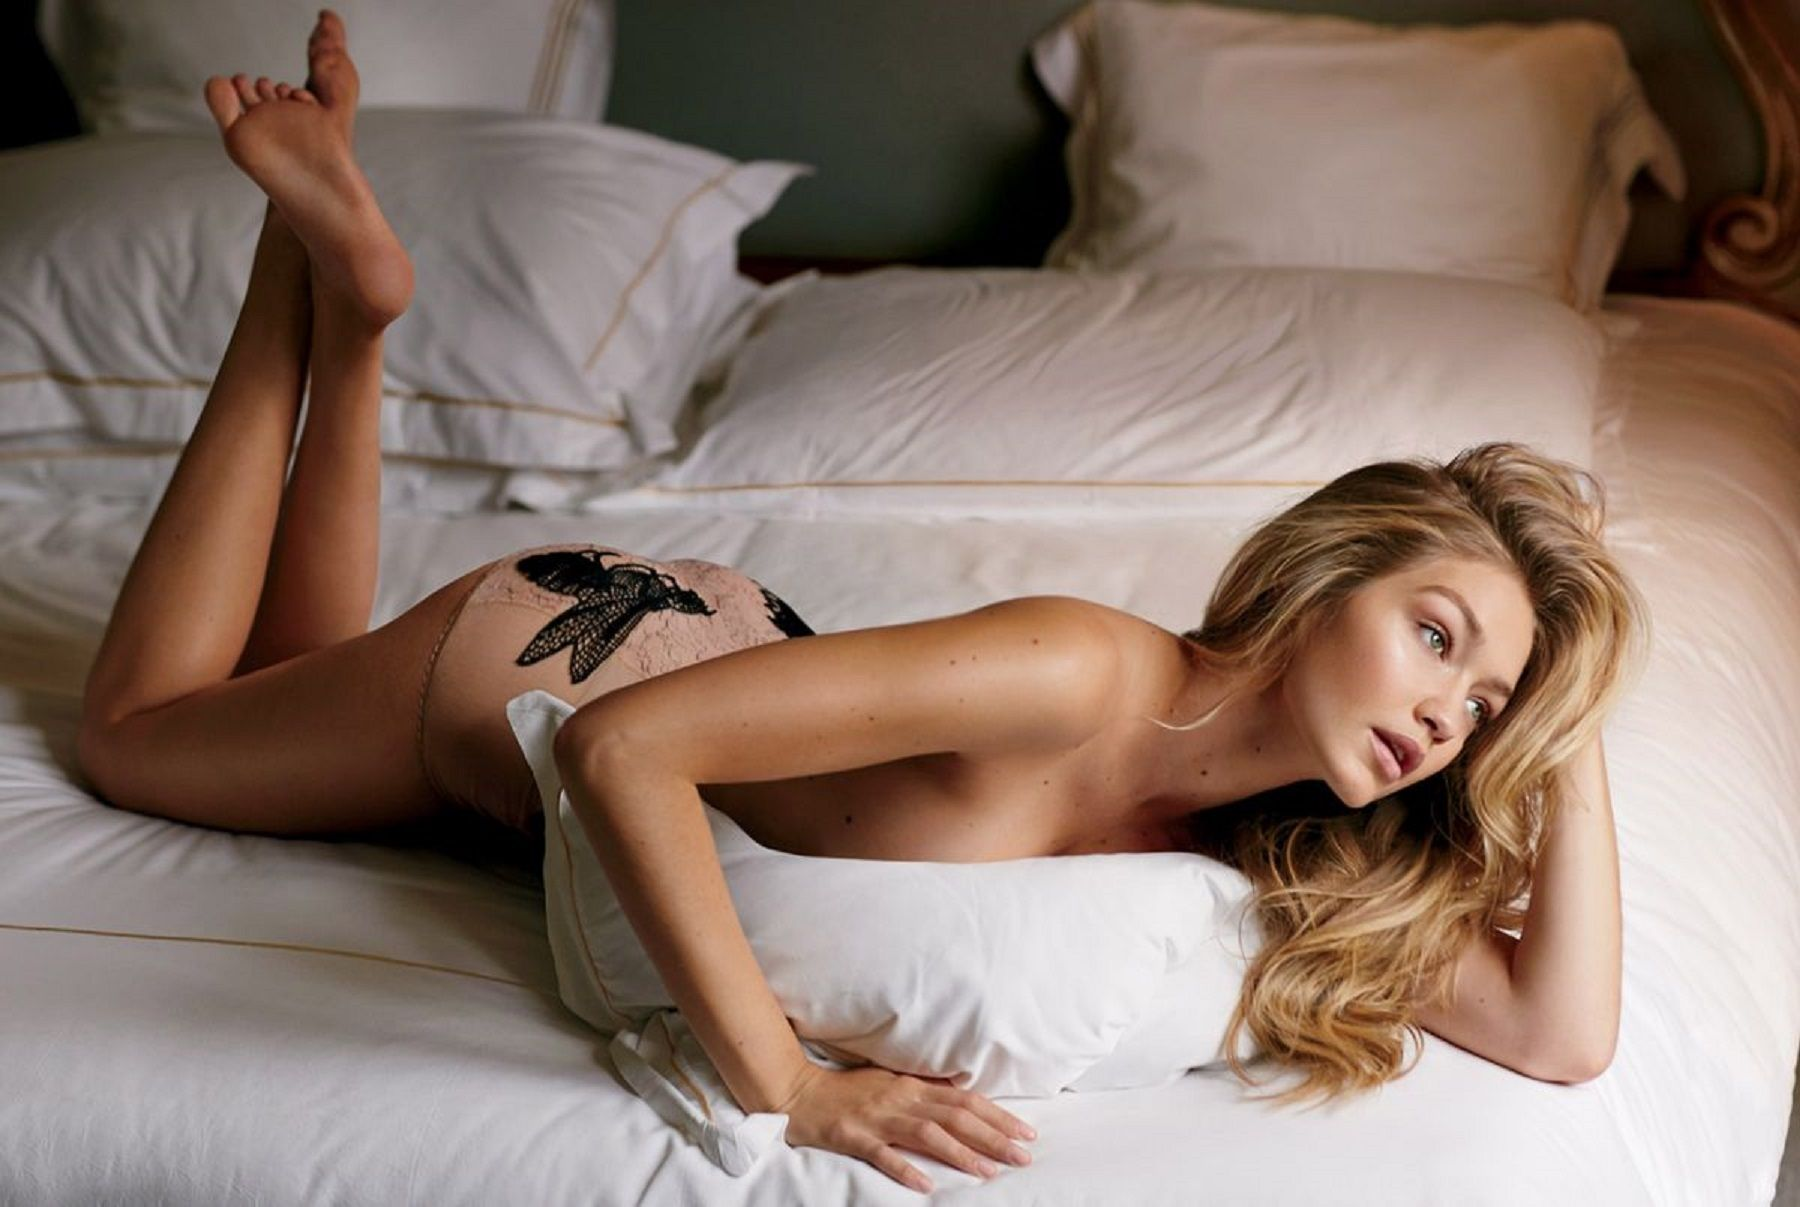 15 Most Revealing Photos Of Gigi Hadid